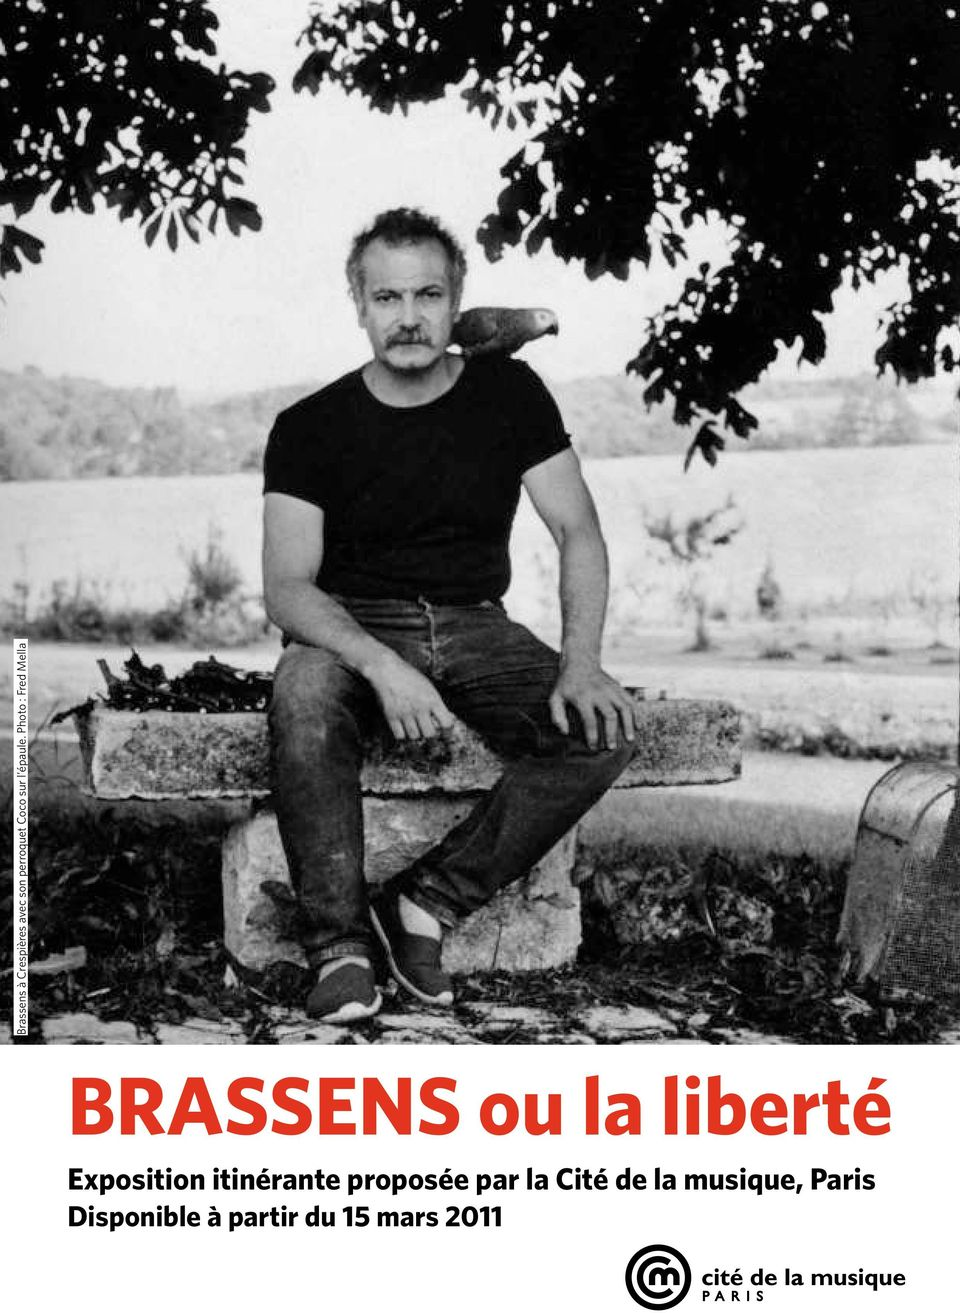 Photo : Fred Mella Brassens ou la liberté